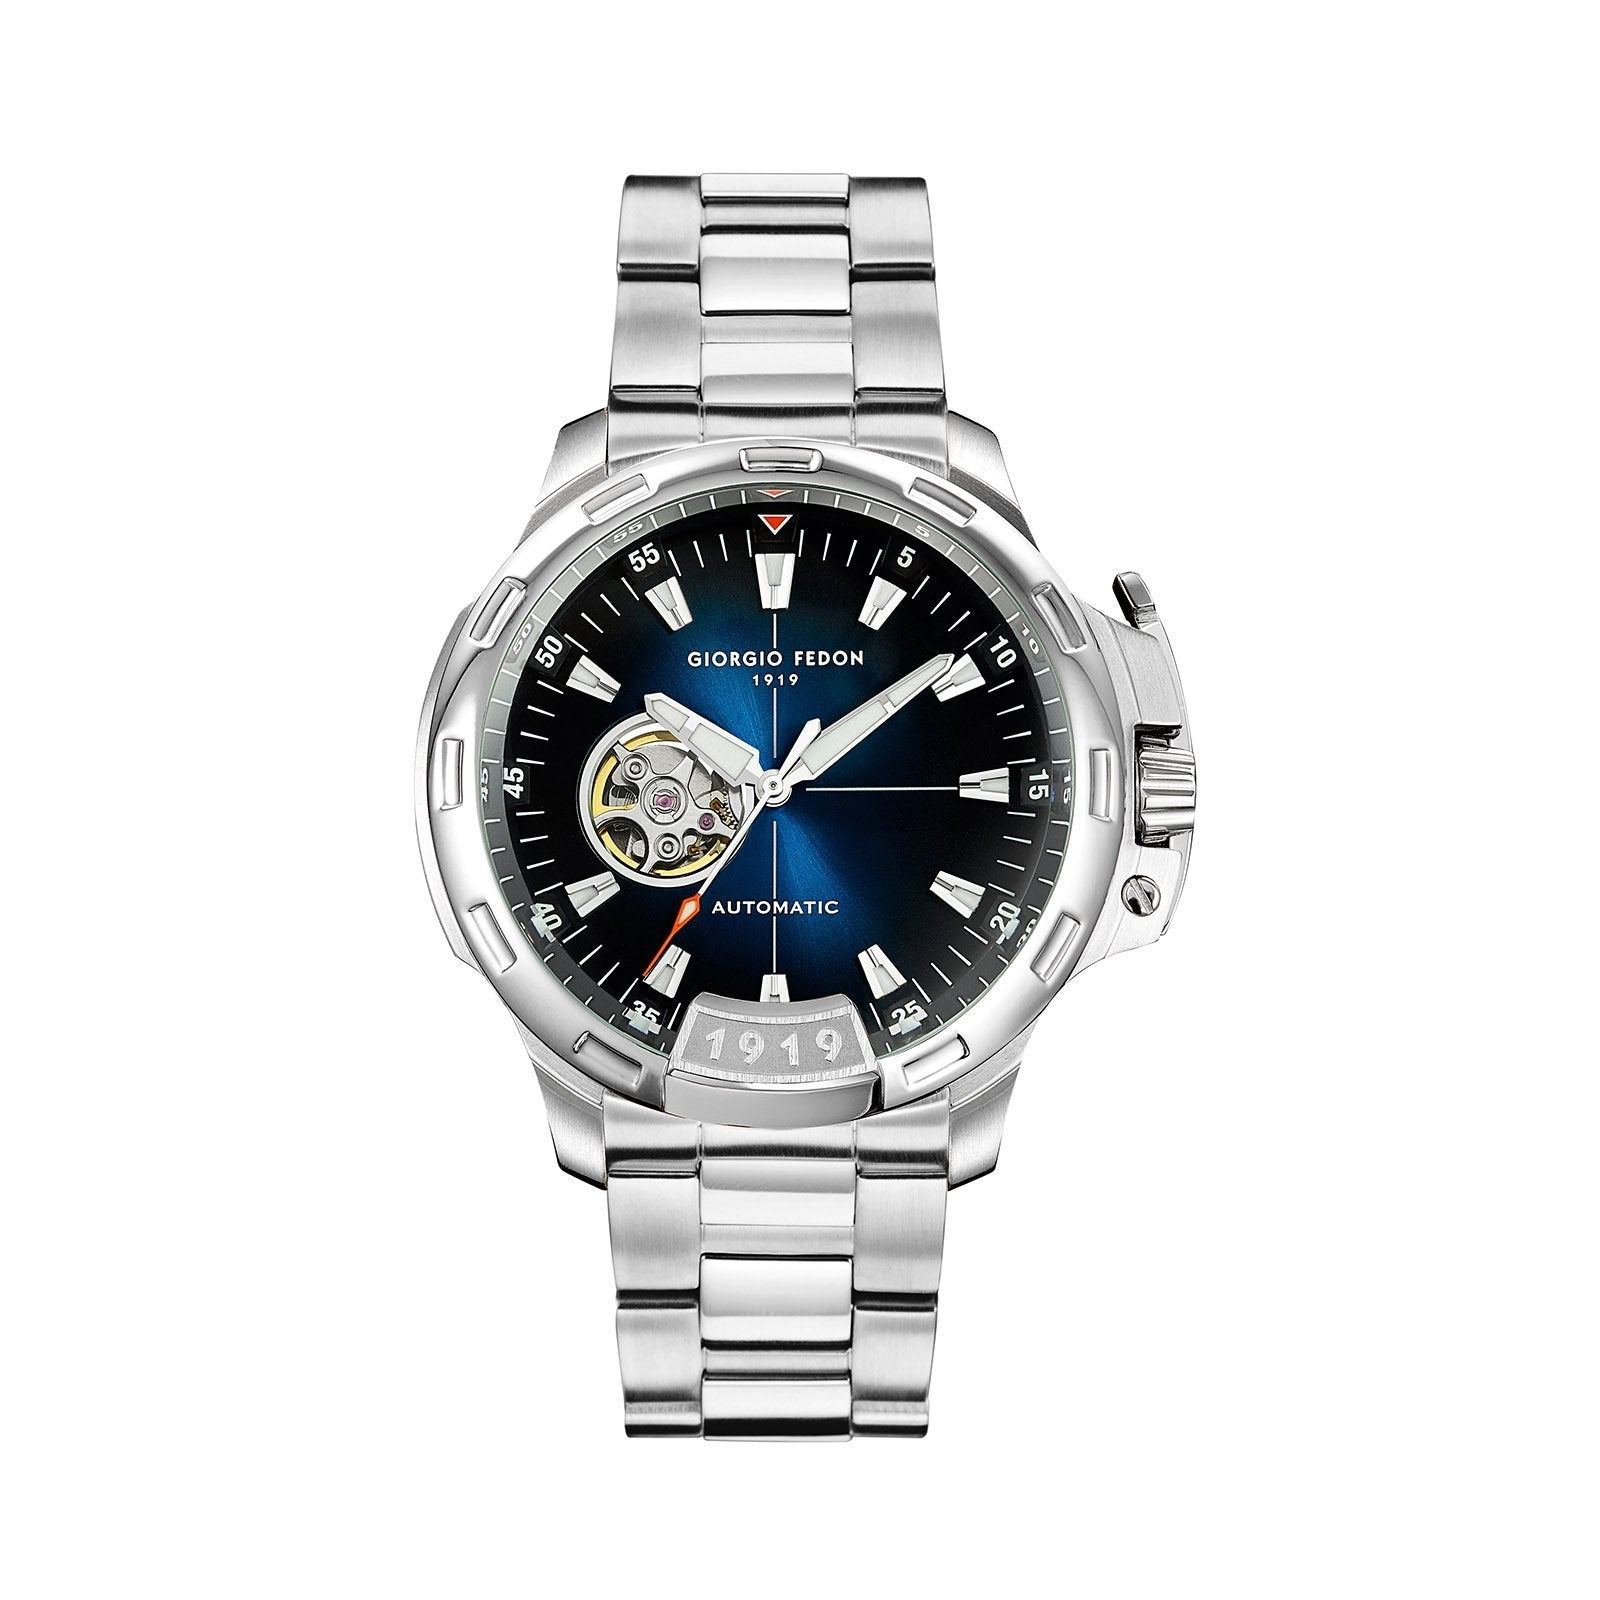 Giorgio Fedon Timeless IX Blue Steel - Watches & Crystals